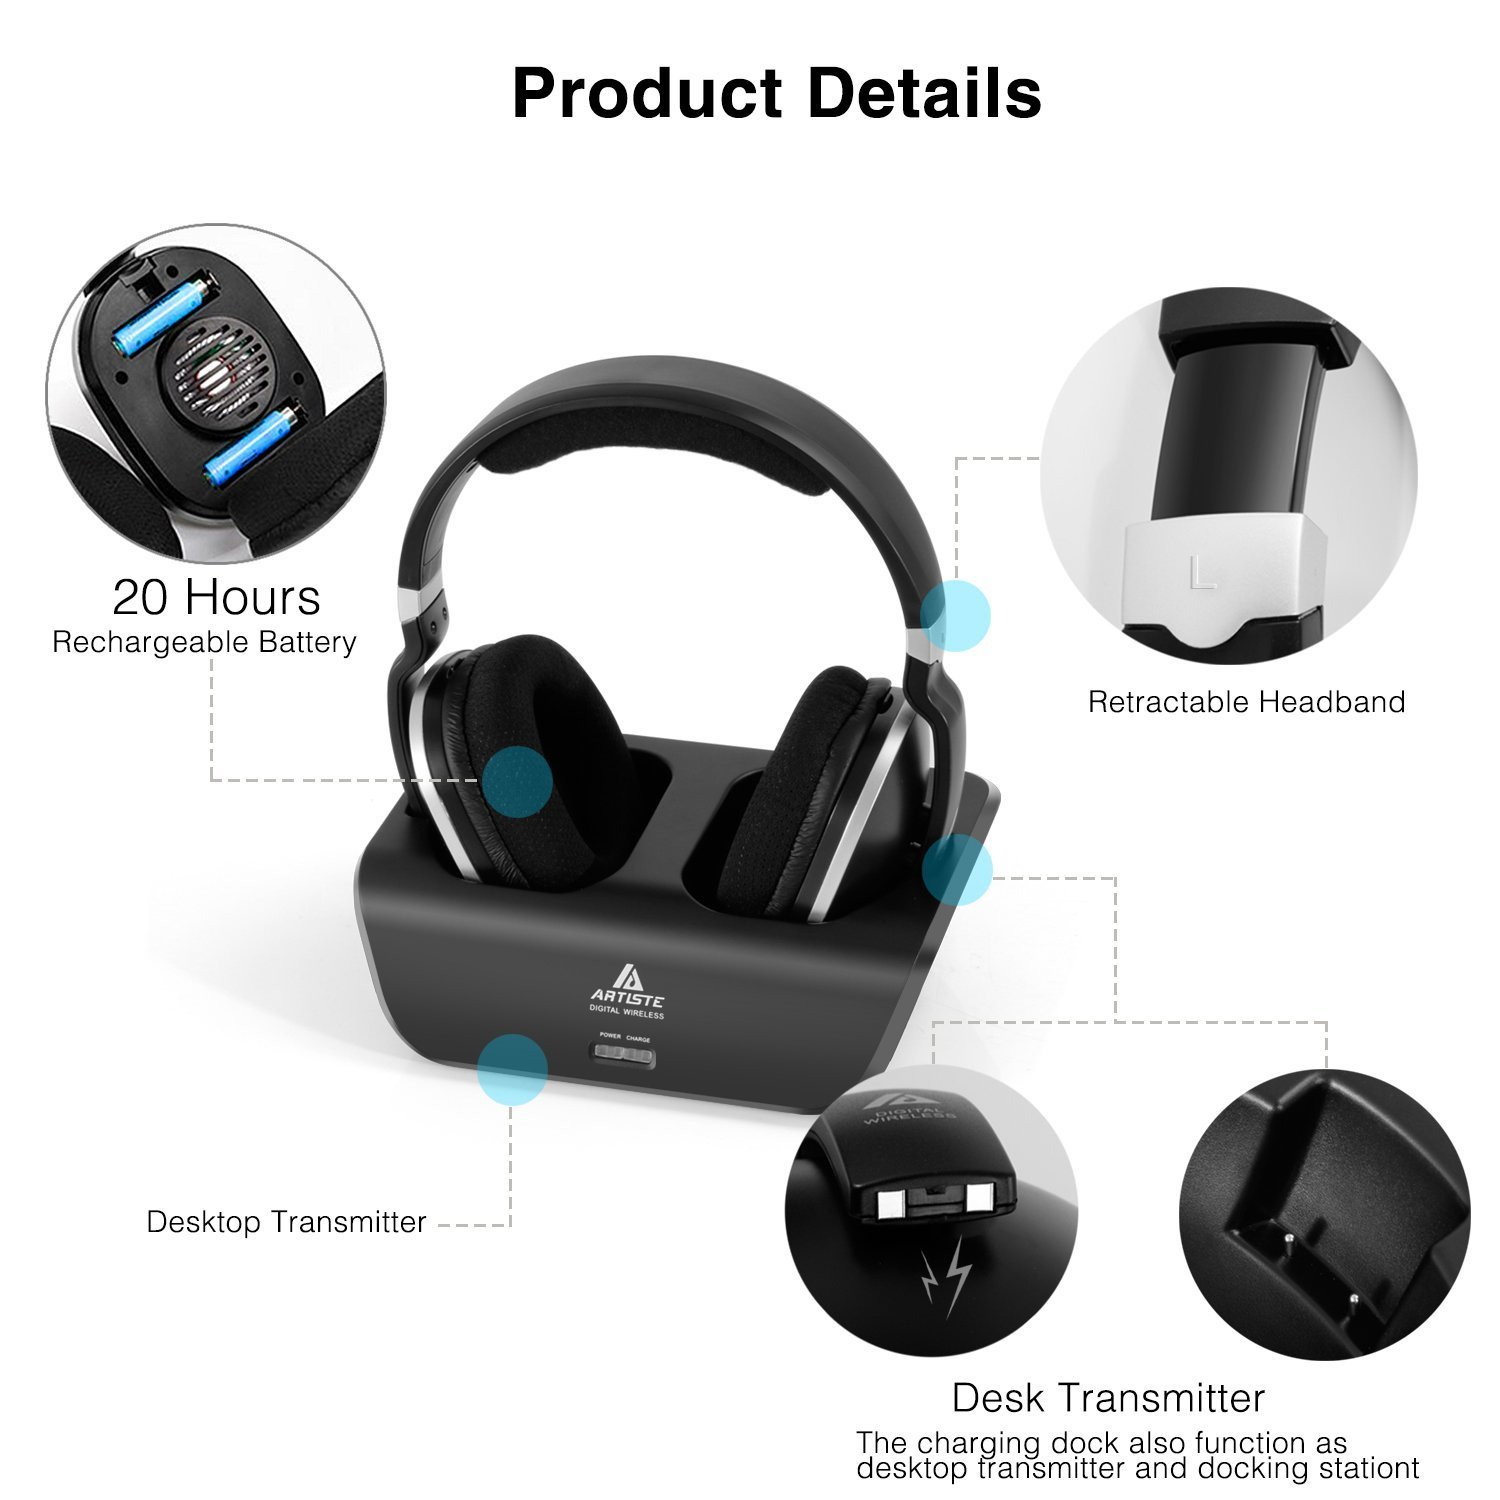 Wireless TV Headphones Over Ear Headsets - Digital Stereo Headsets with 2.4GHz RF Transmitter, Charging Dock, 100ft Wireless Range and Rechargeable 20 Hour Battery, Black by ARTISTE (Image #2)